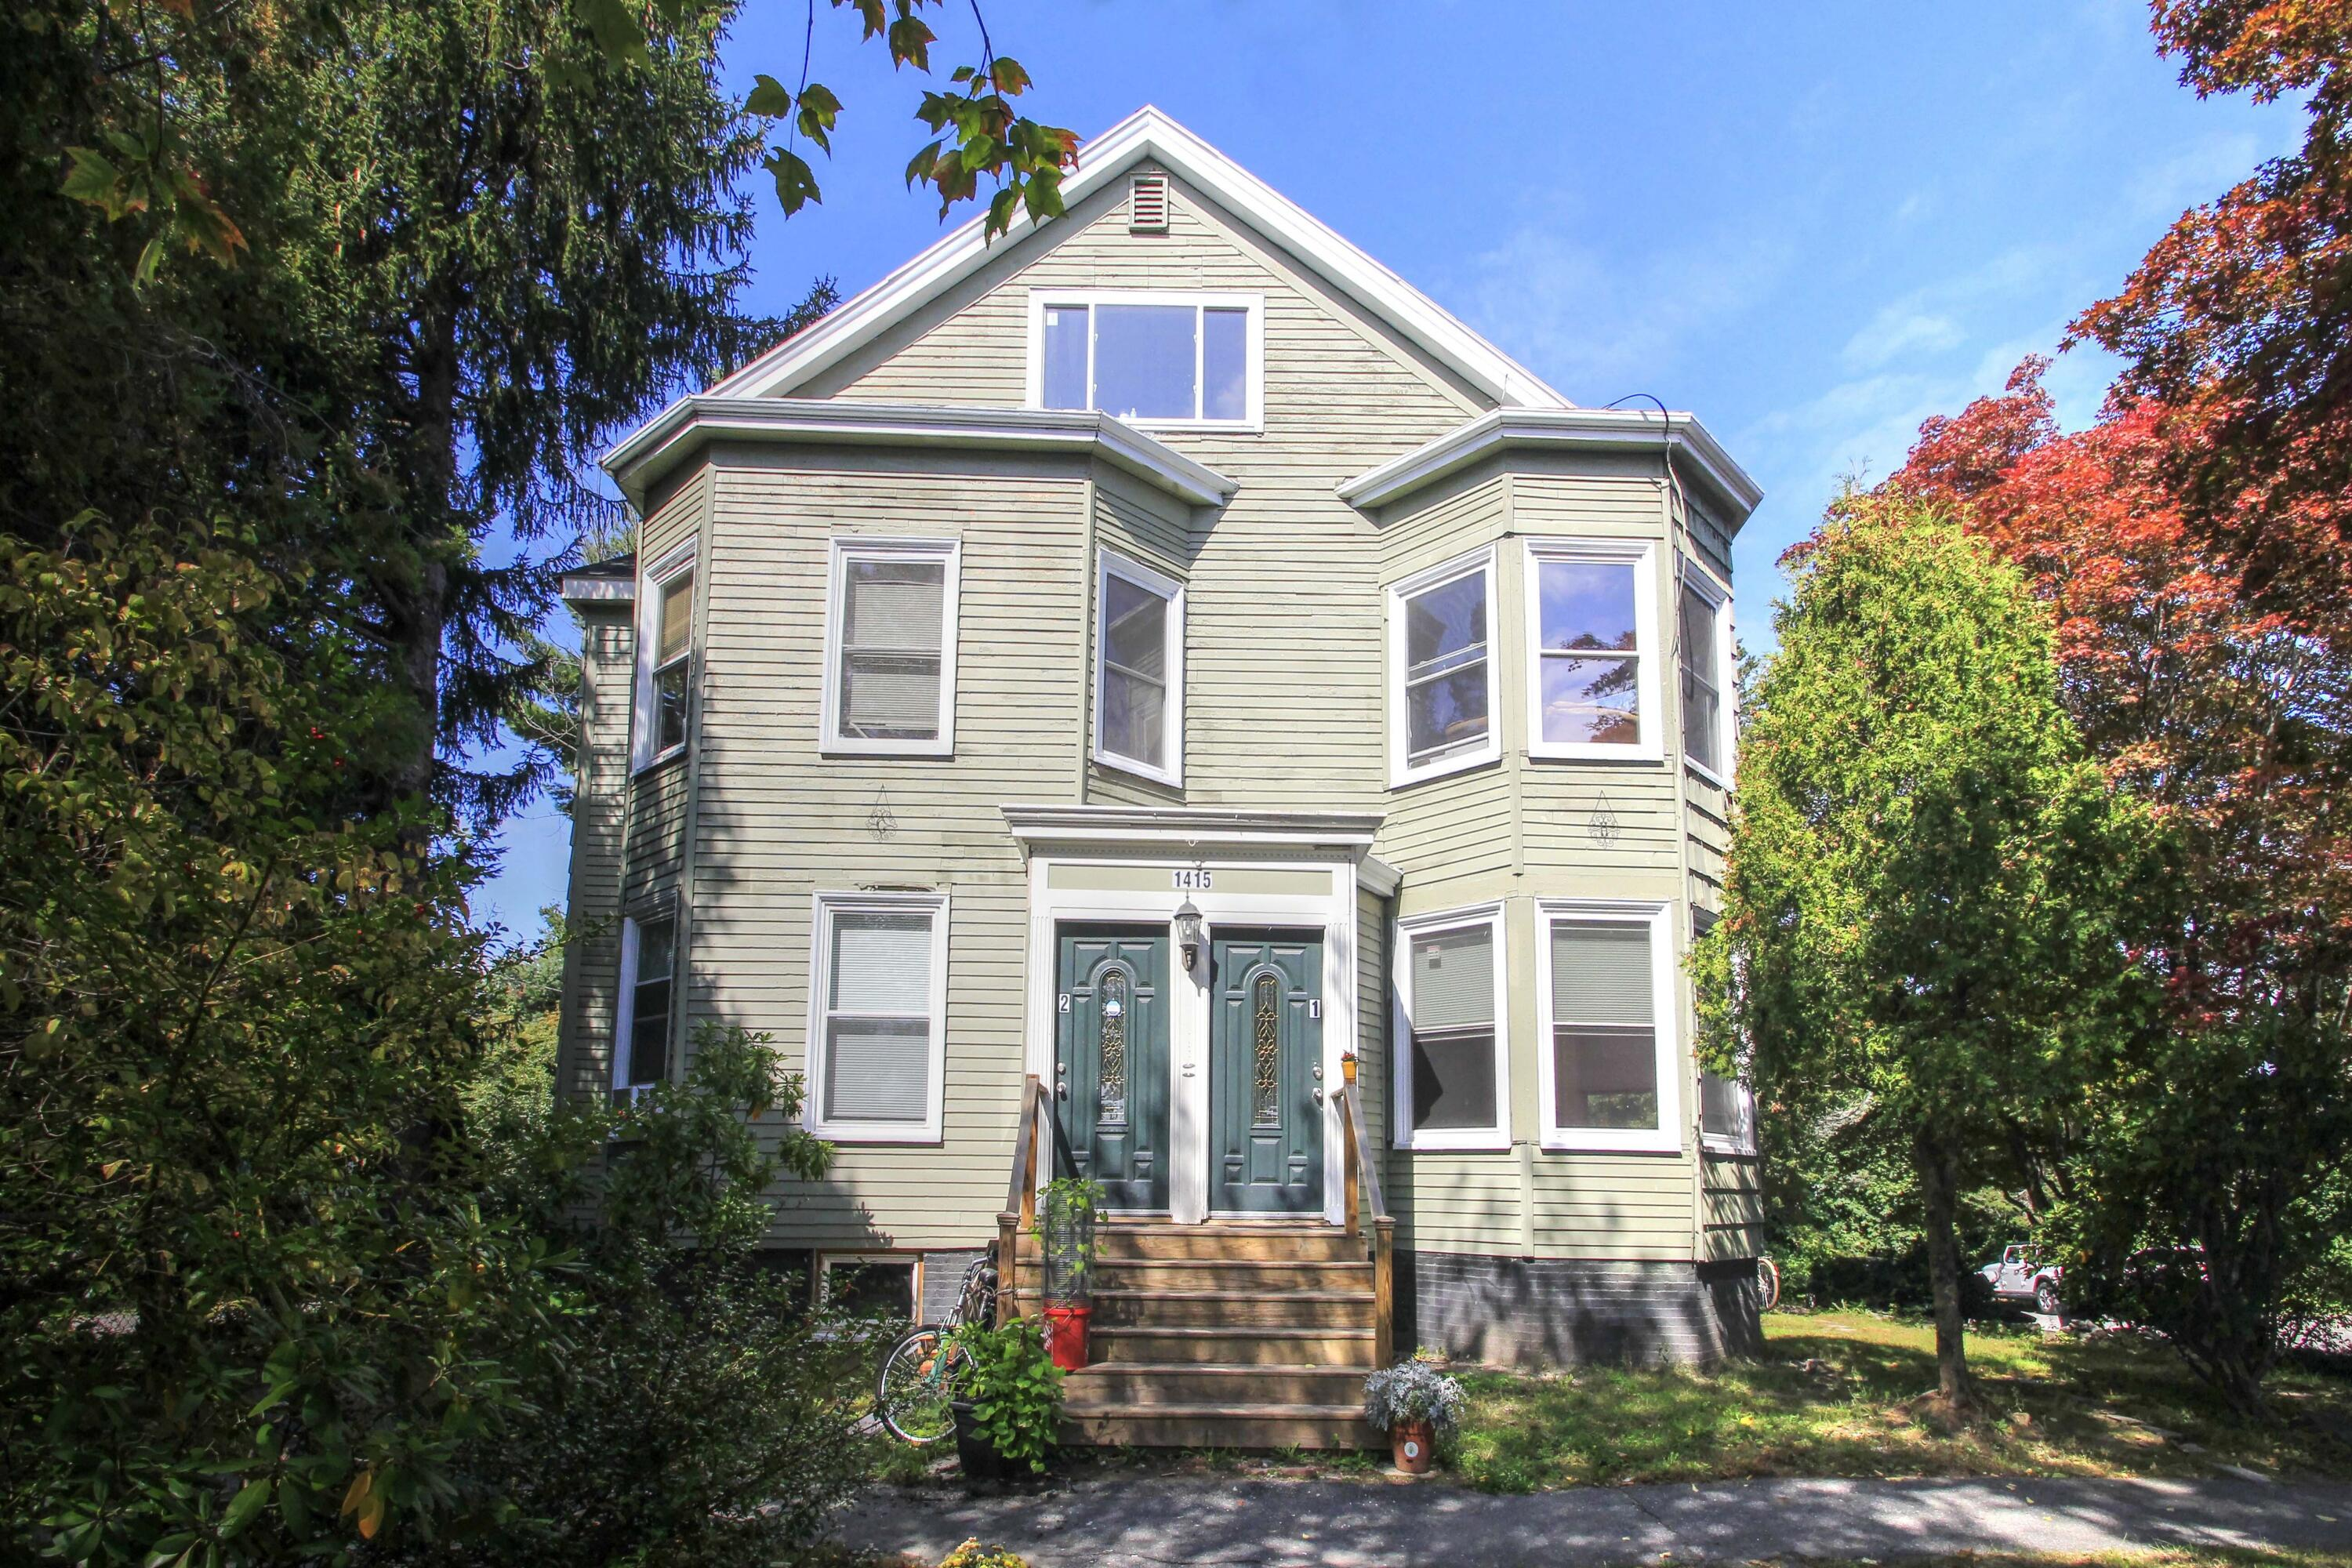 Main image for MLS listing 1507364